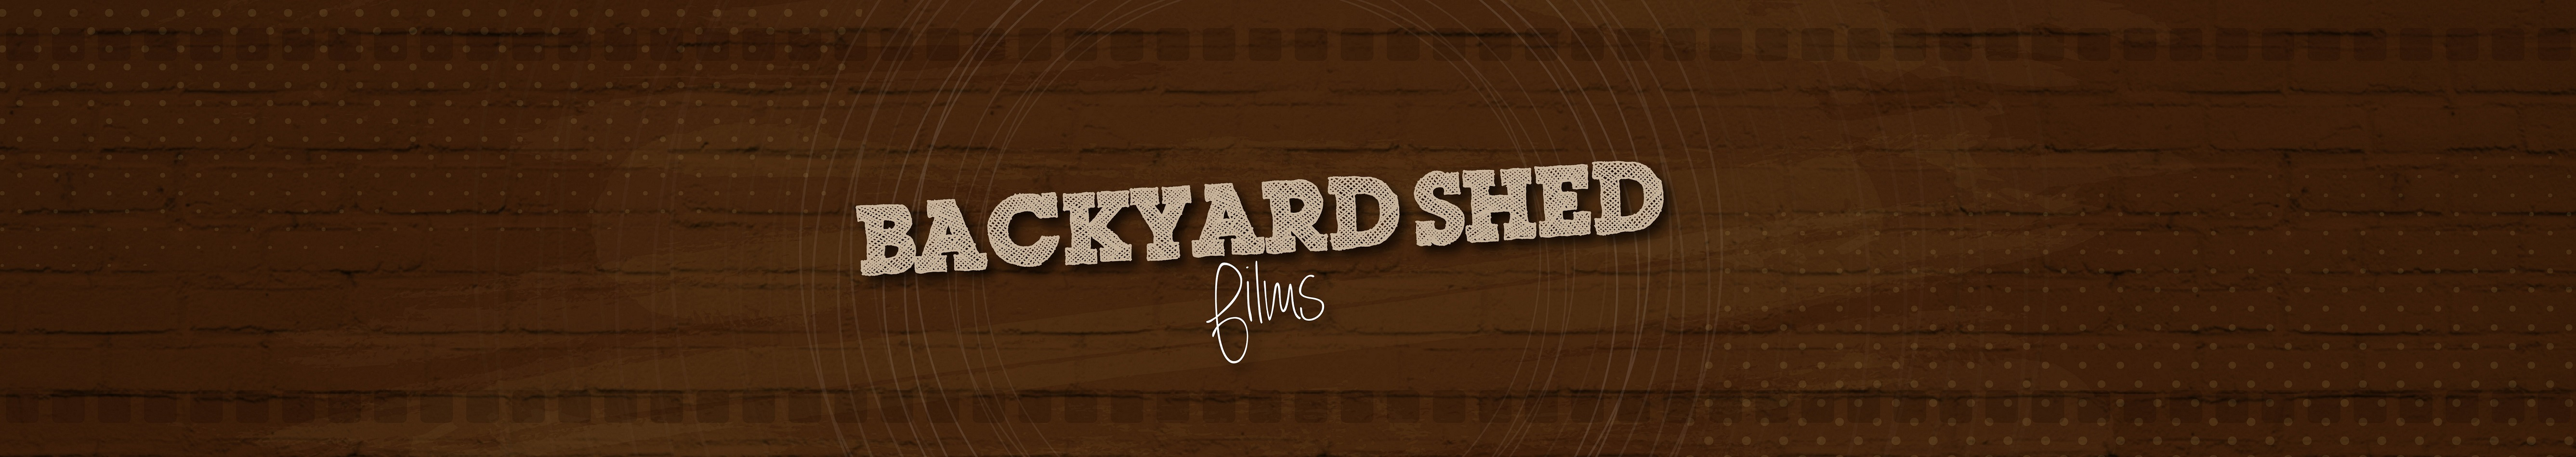 Last Spring Break | Backyard Shed Films